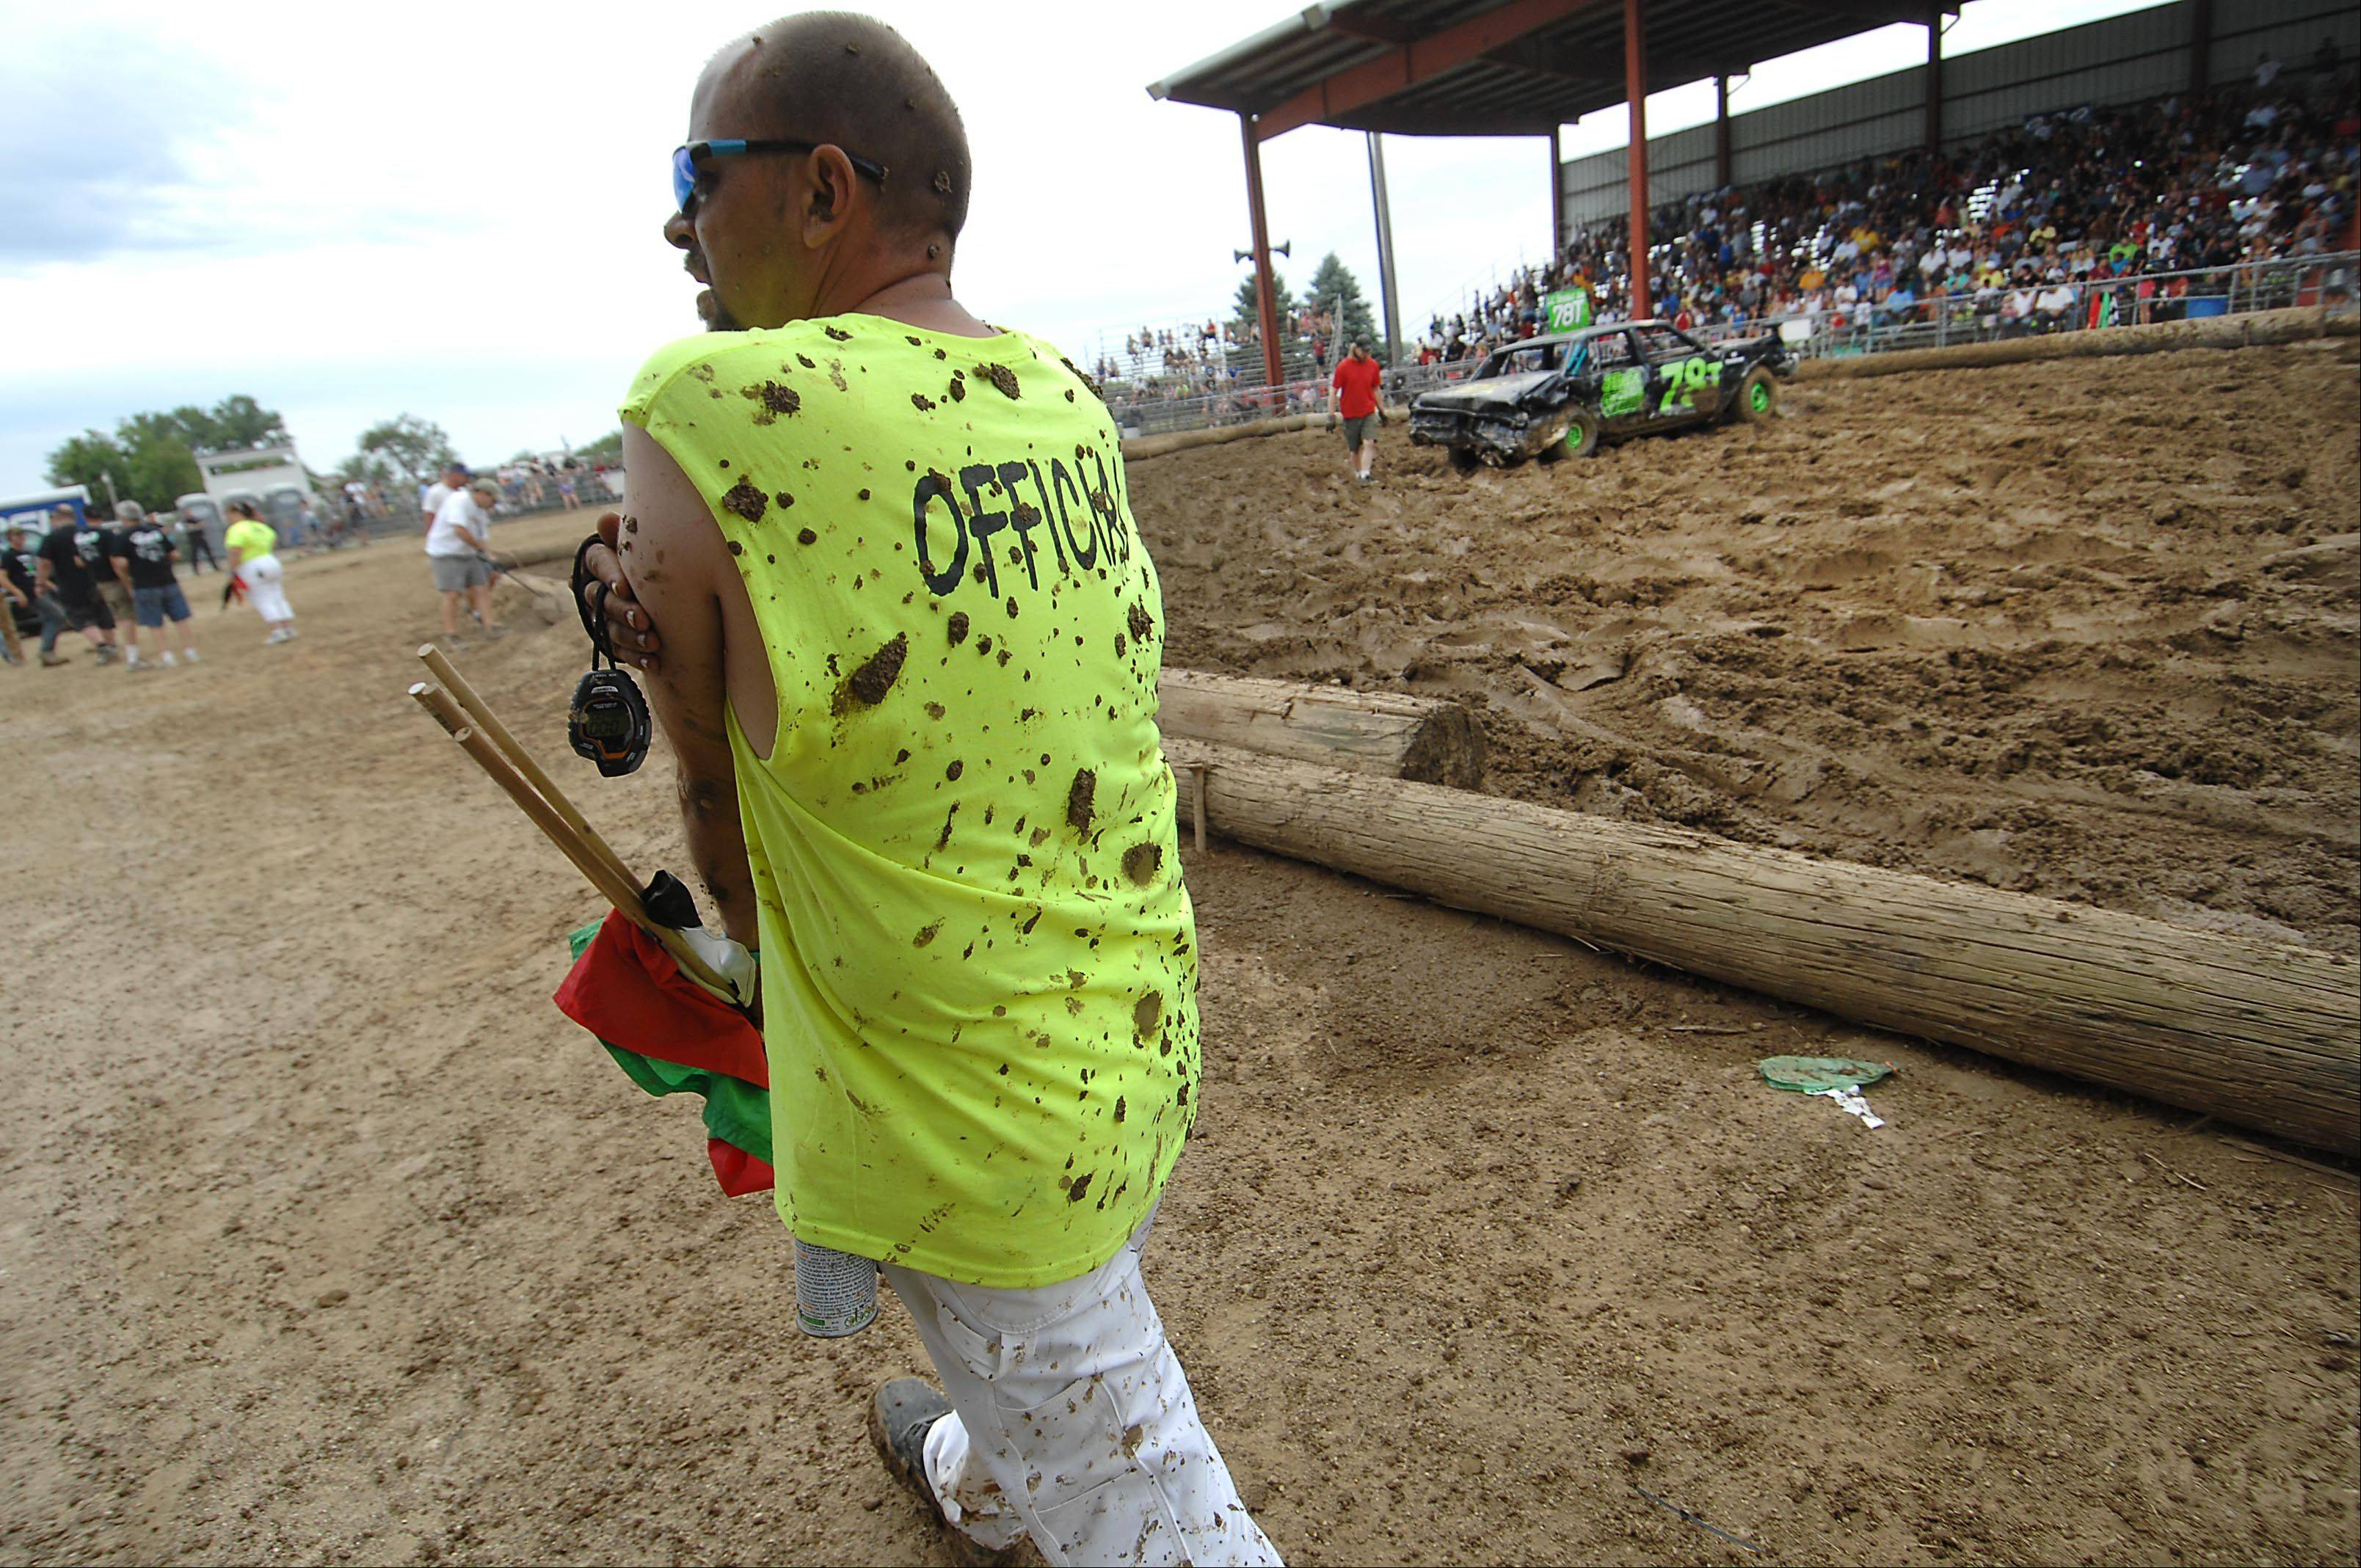 A mud-splattered official walks past the arena between heats of the Demolition Derby at the Kane County Fair Sunday in St. Charles.